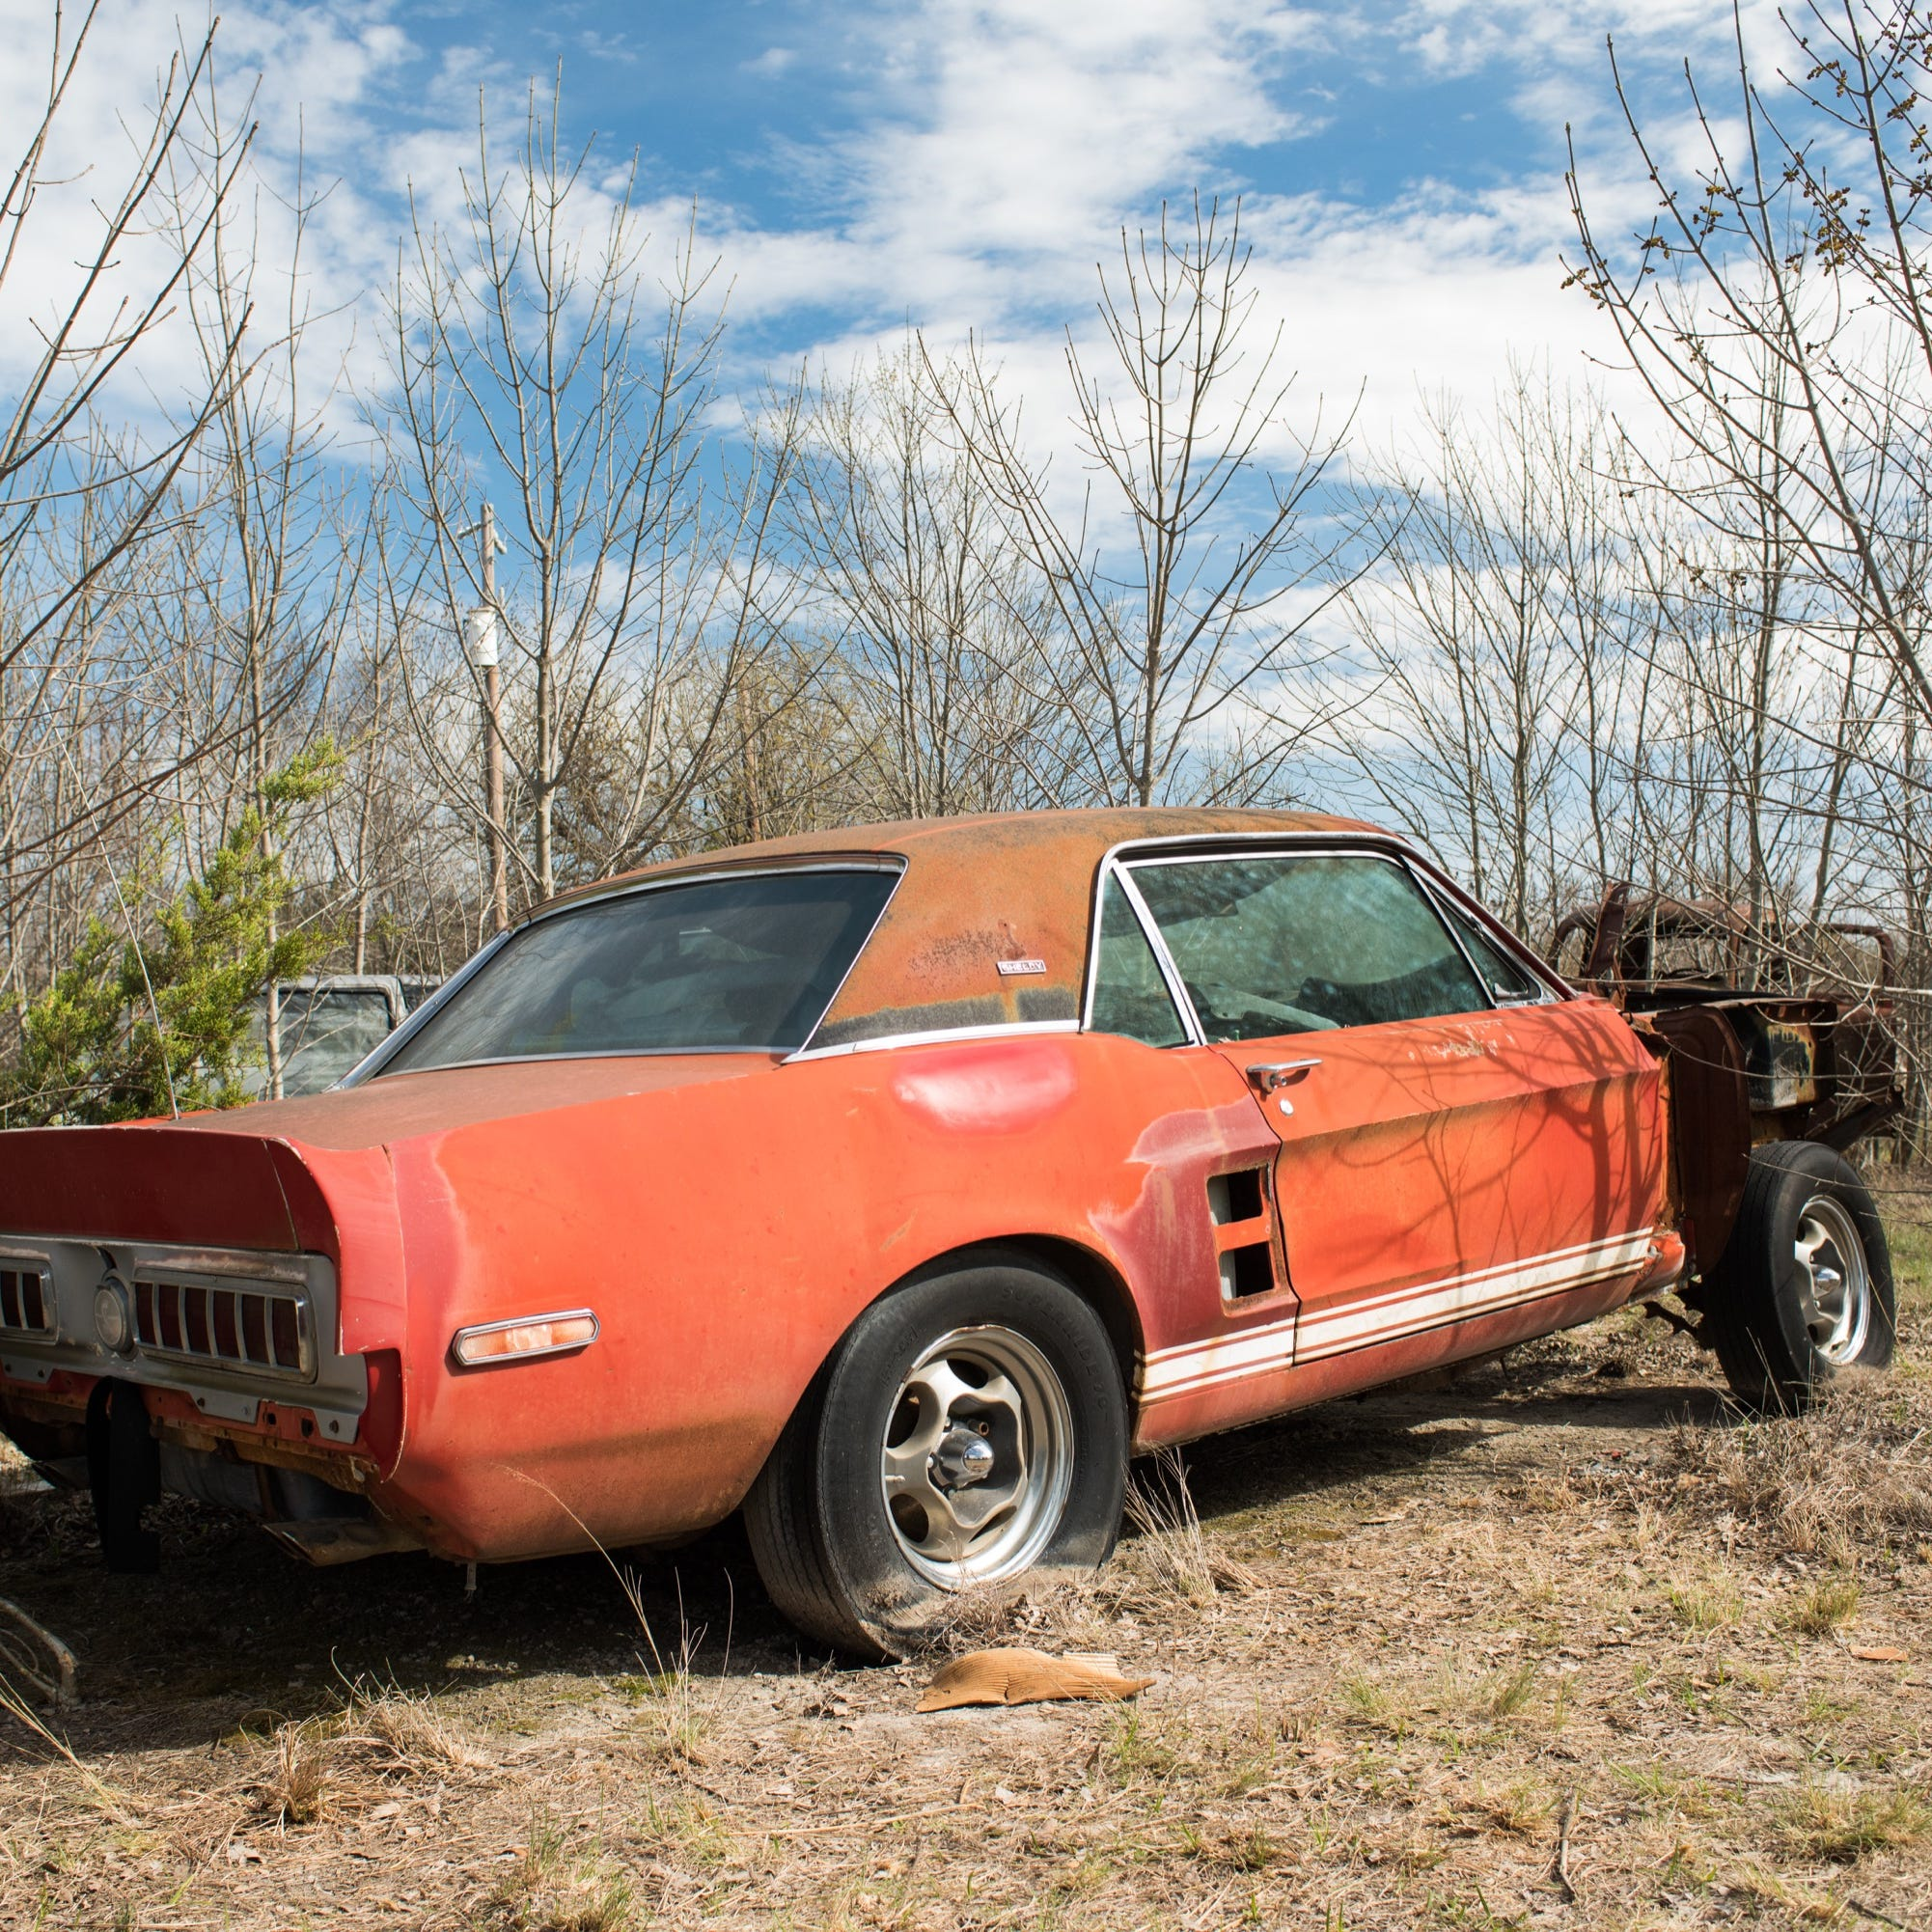 Experts crowdsource search for near-mythical Shelby Mustang prototype